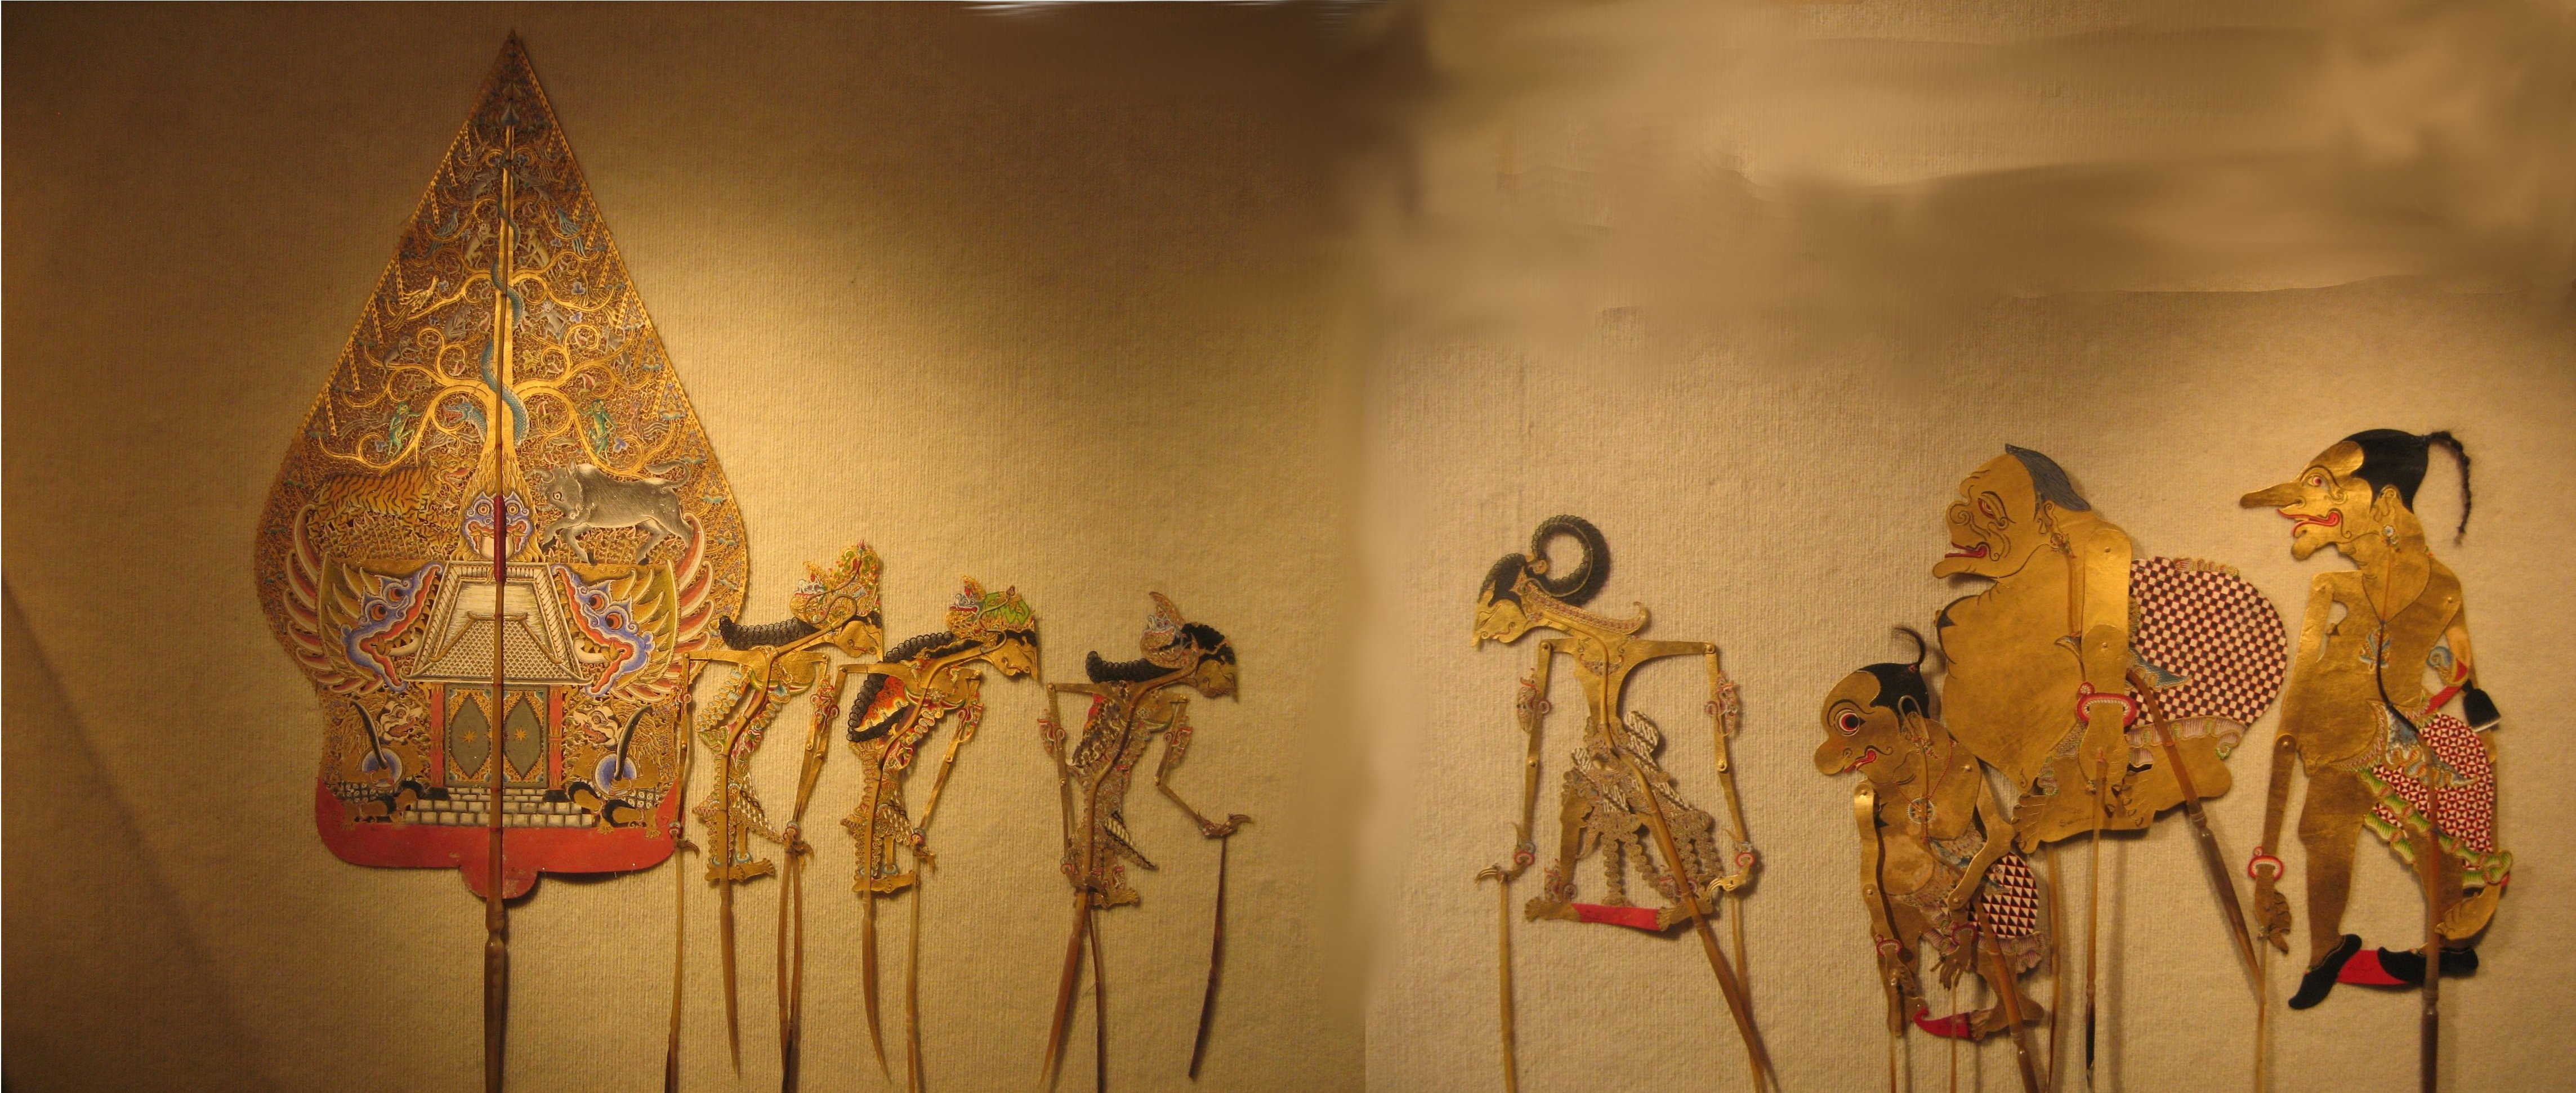 File:Wayang (shadow puppets) from central Java, a scene from 'Irawan's ...